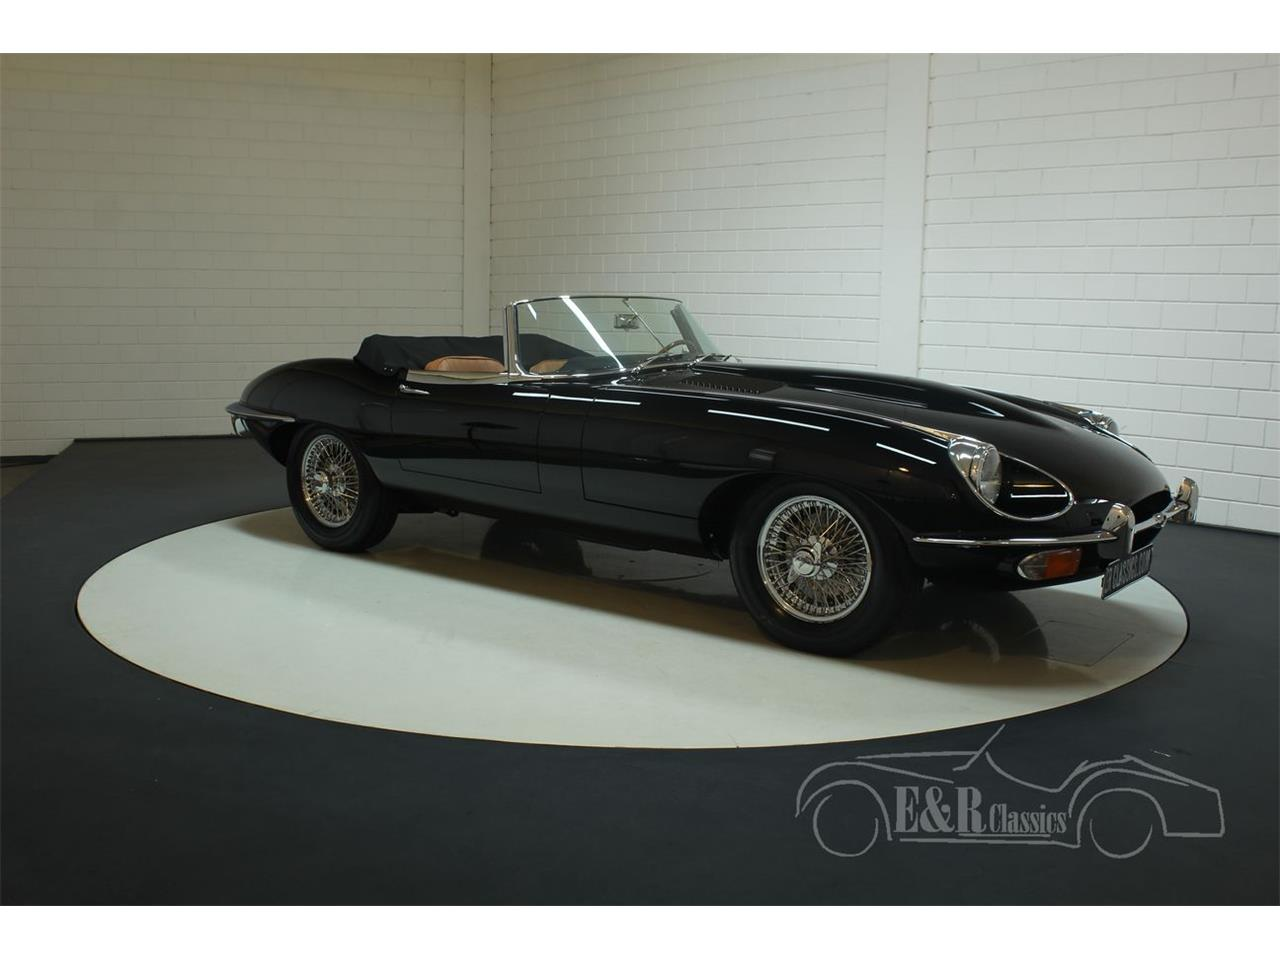 Large Picture of Classic 1969 E-Type located in Waalwijk noord brabant - $145,500.00 Offered by E & R Classics - QOU8